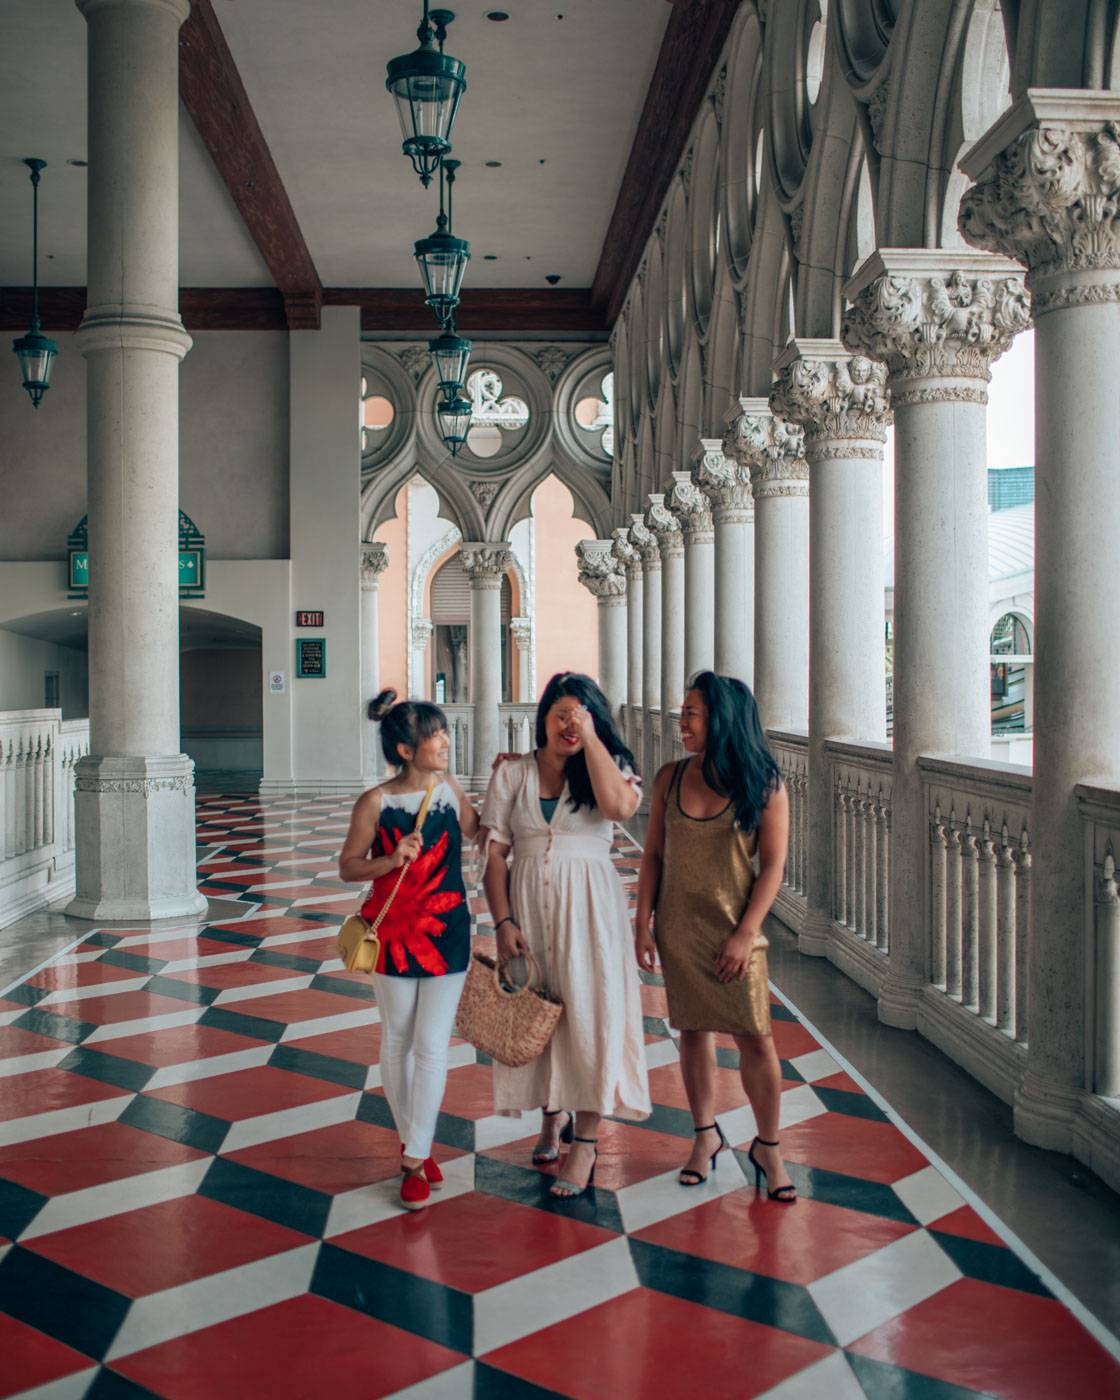 Vegas is what Instagram dreams are made of: we've visited some best insta spots on our girls' trip to Vegas with Suiteness